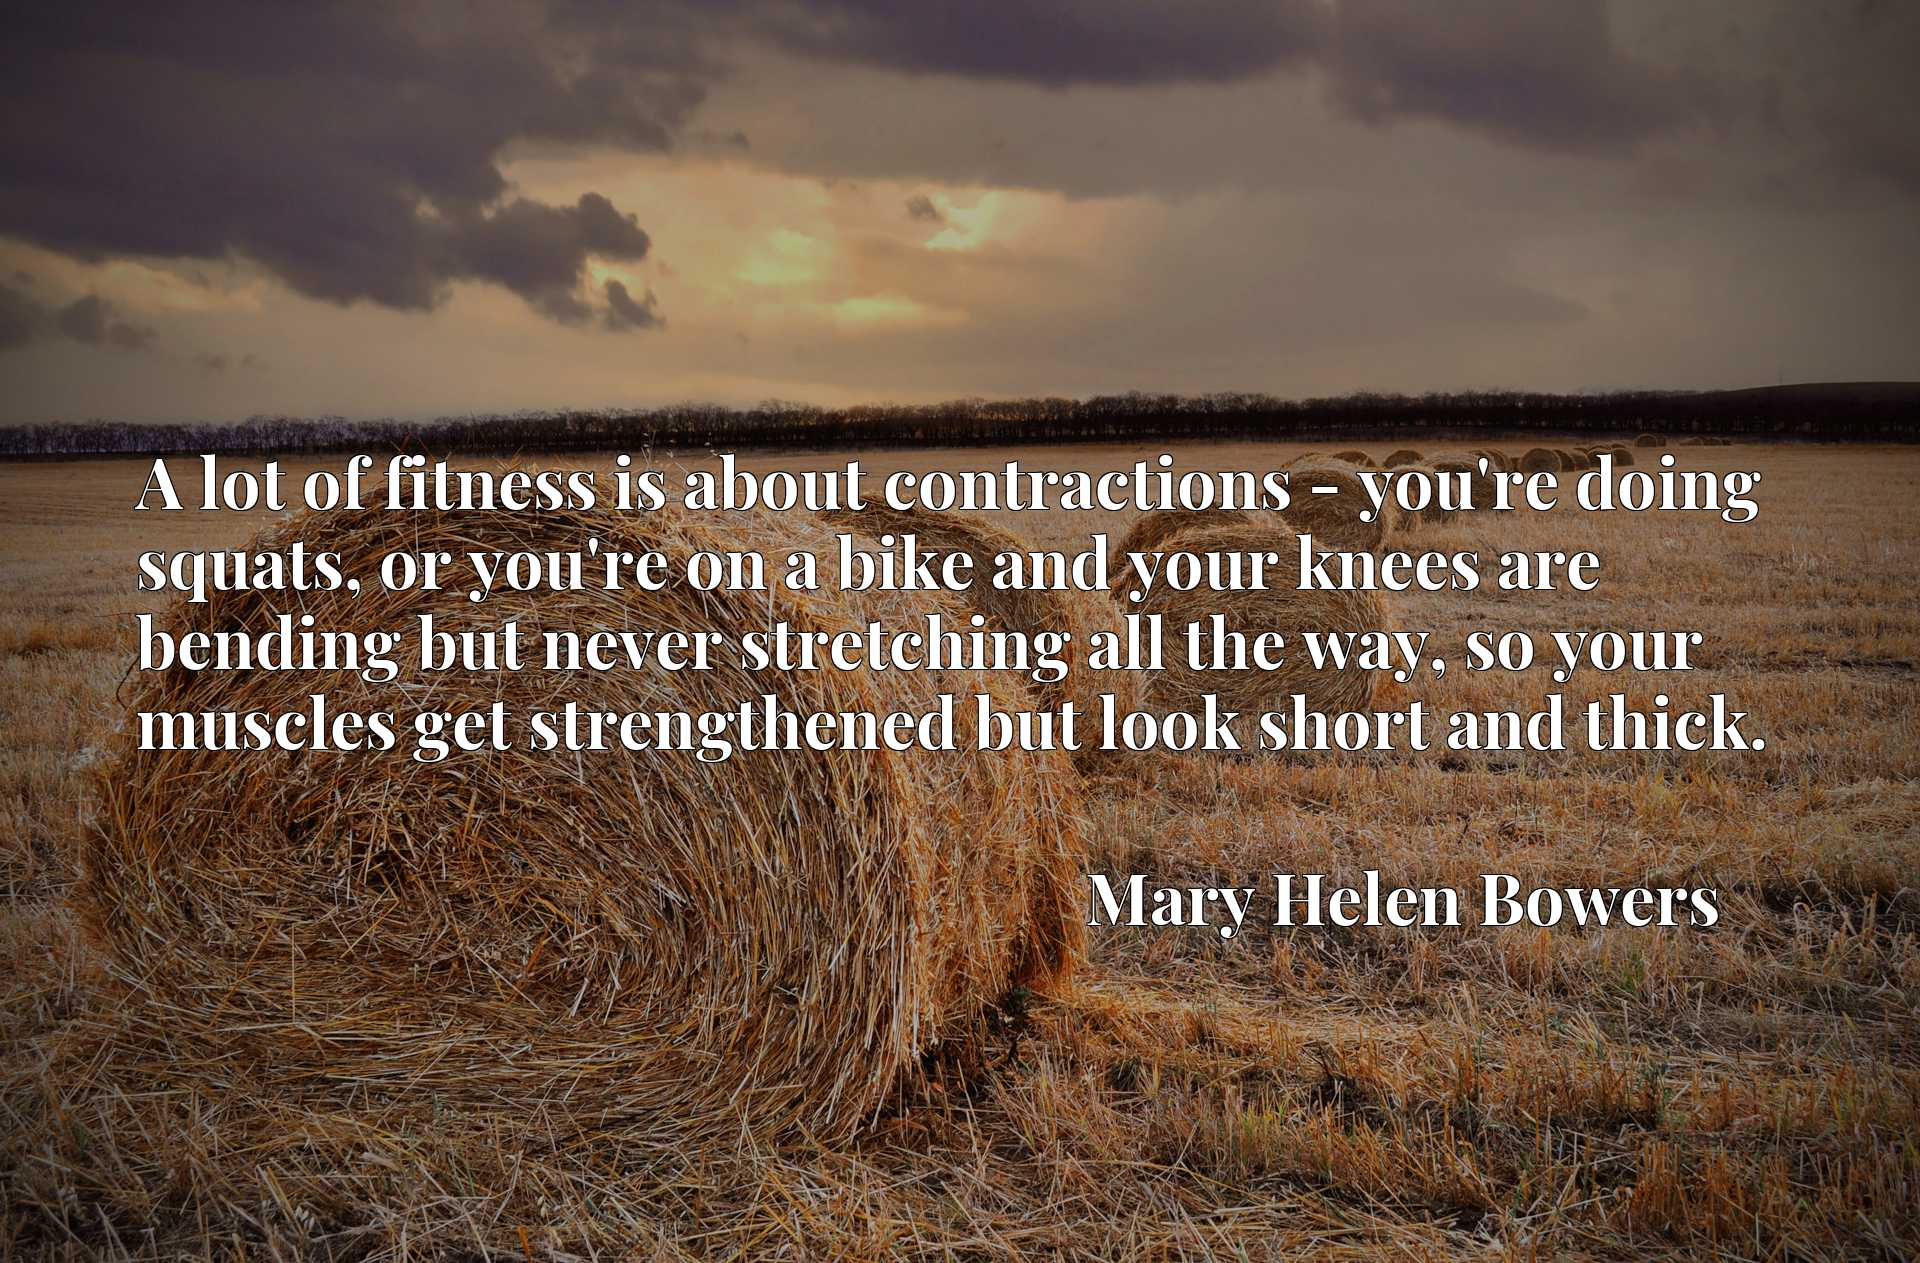 A lot of fitness is about contractions - you're doing squats, or you're on a bike and your knees are bending but never stretching all the way, so your muscles get strengthened but look short and thick.